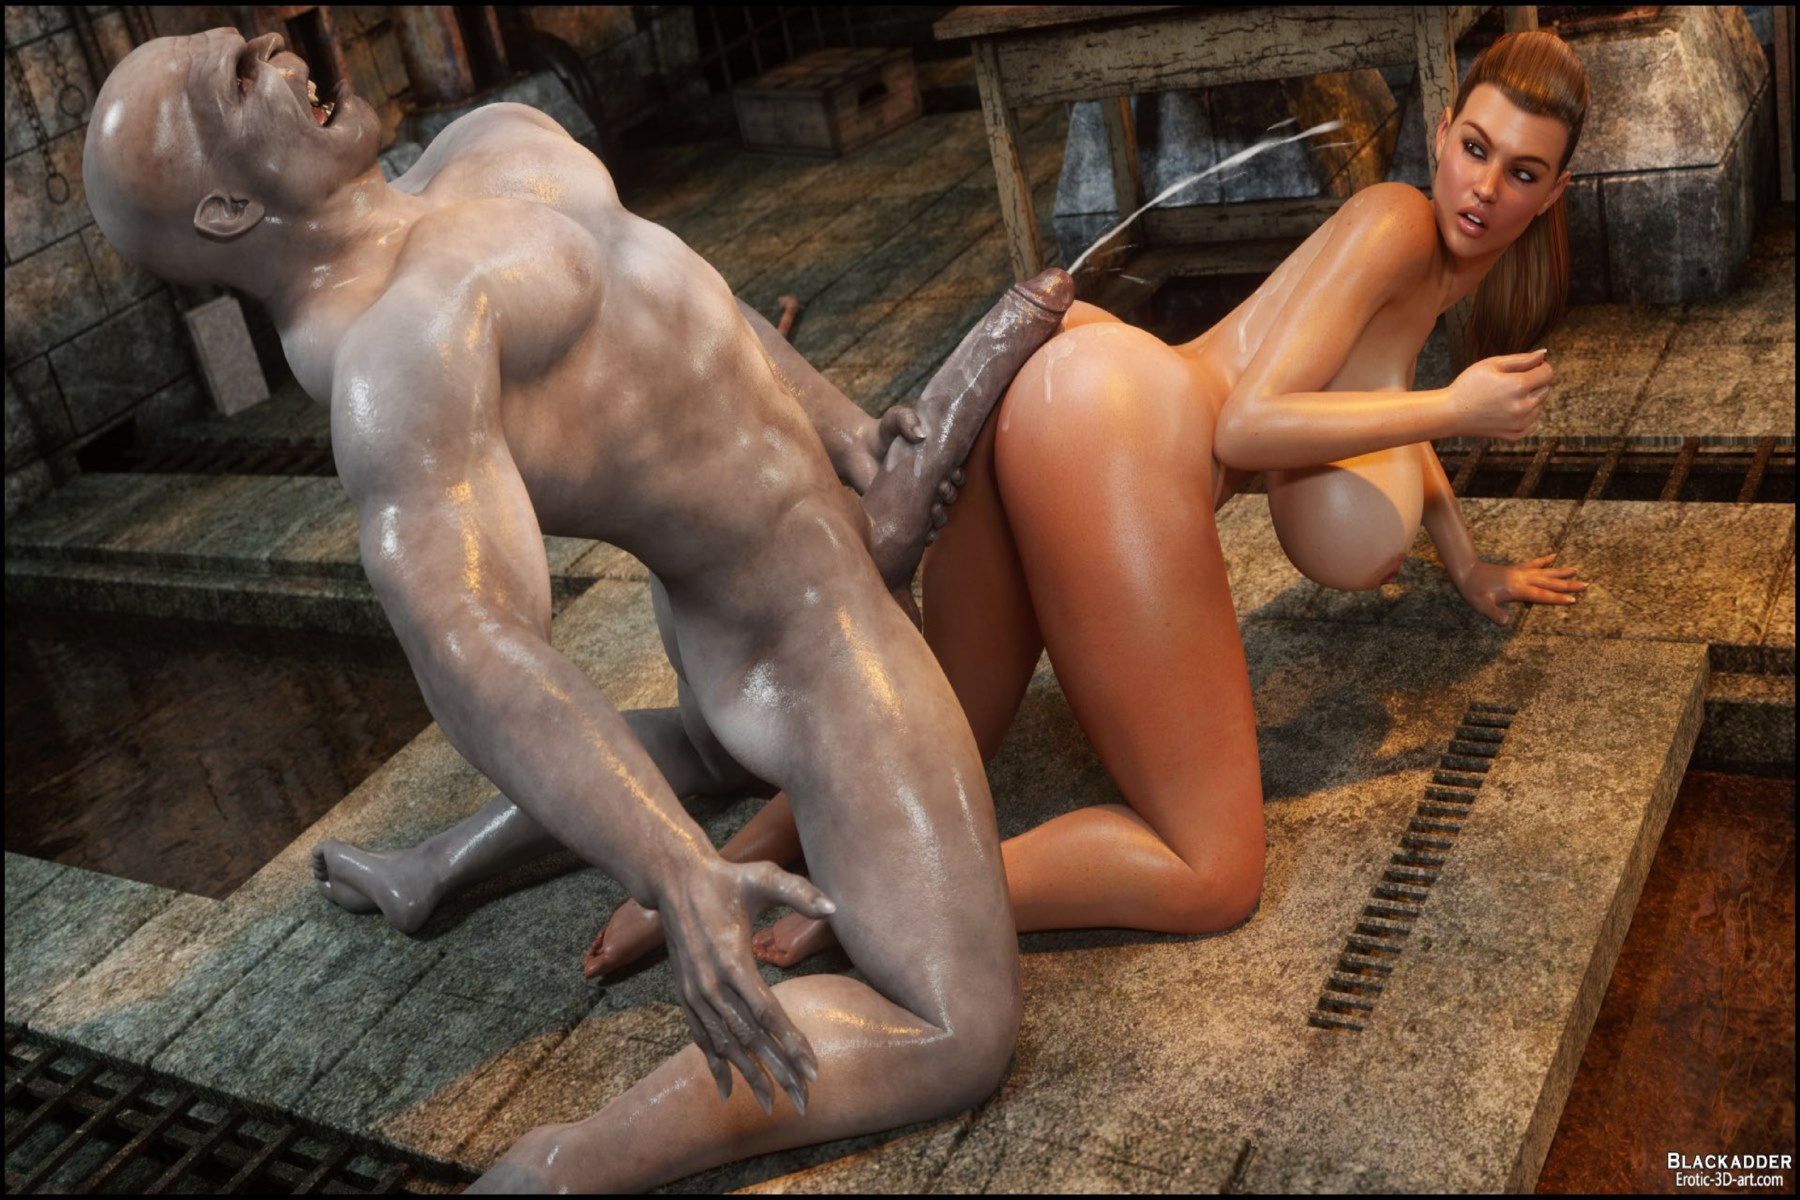 Thundorn games deeper version posted zaola category adult games photo 2